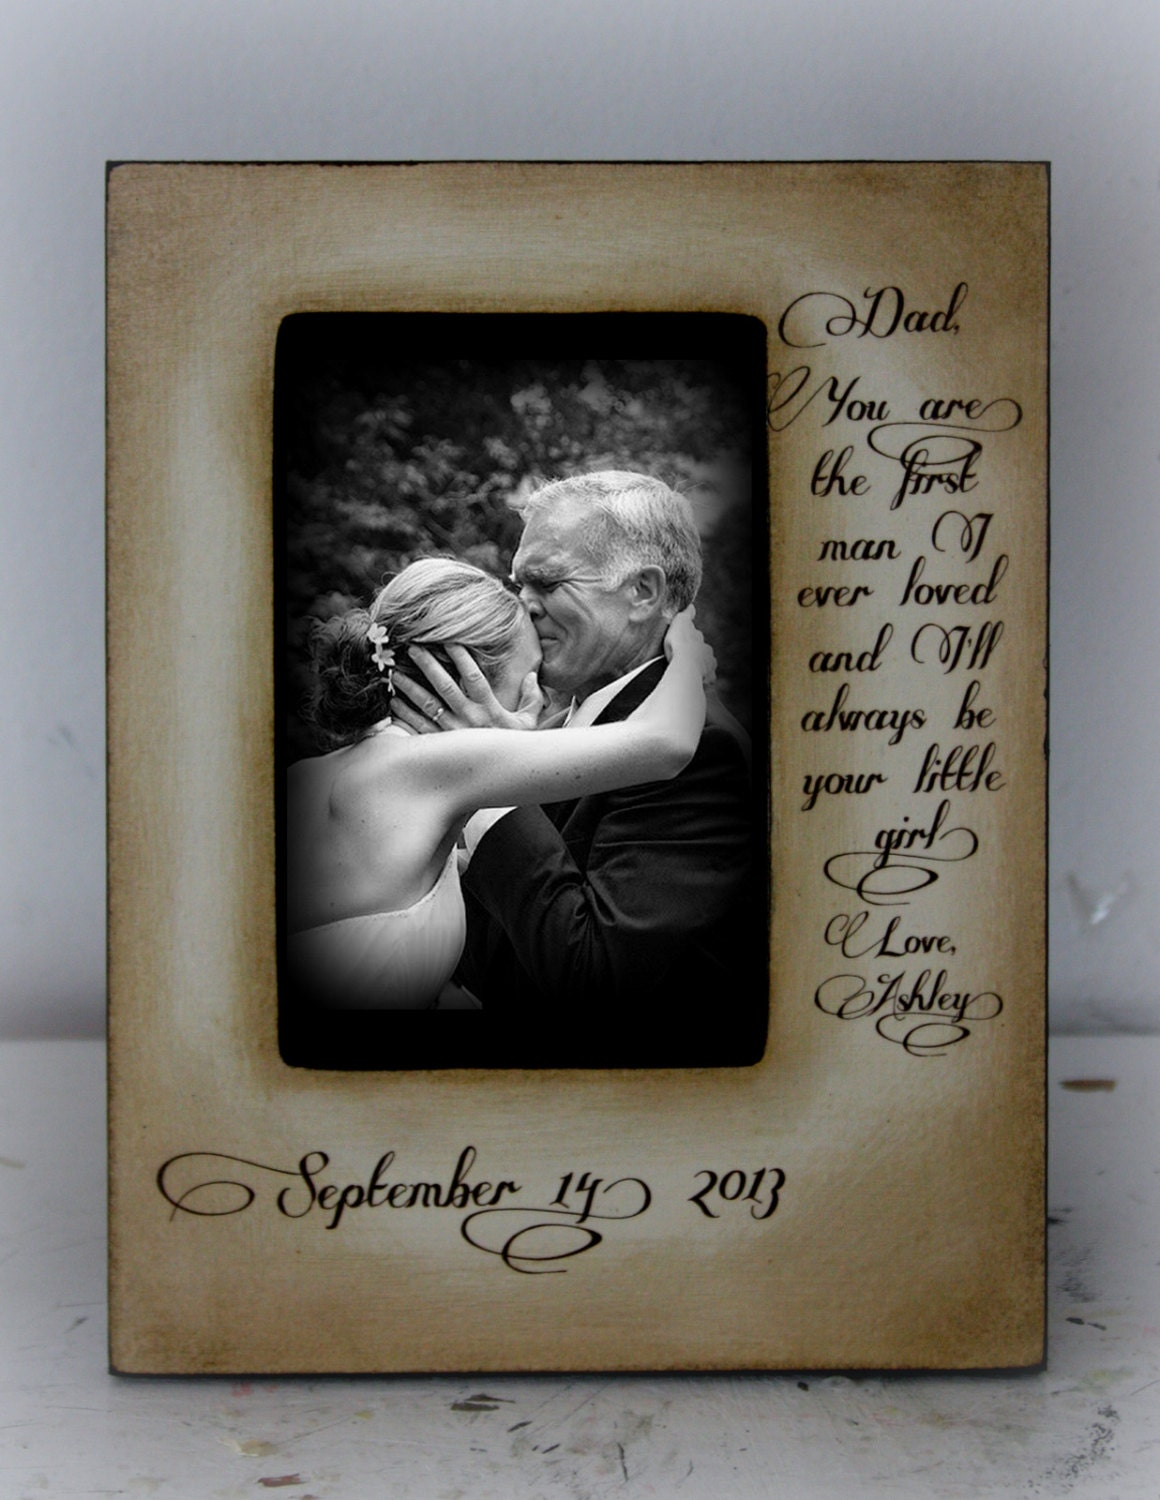 Wedding Gift Father Daughter : Father Daughter Wedding Frame Bride First man I ever loved